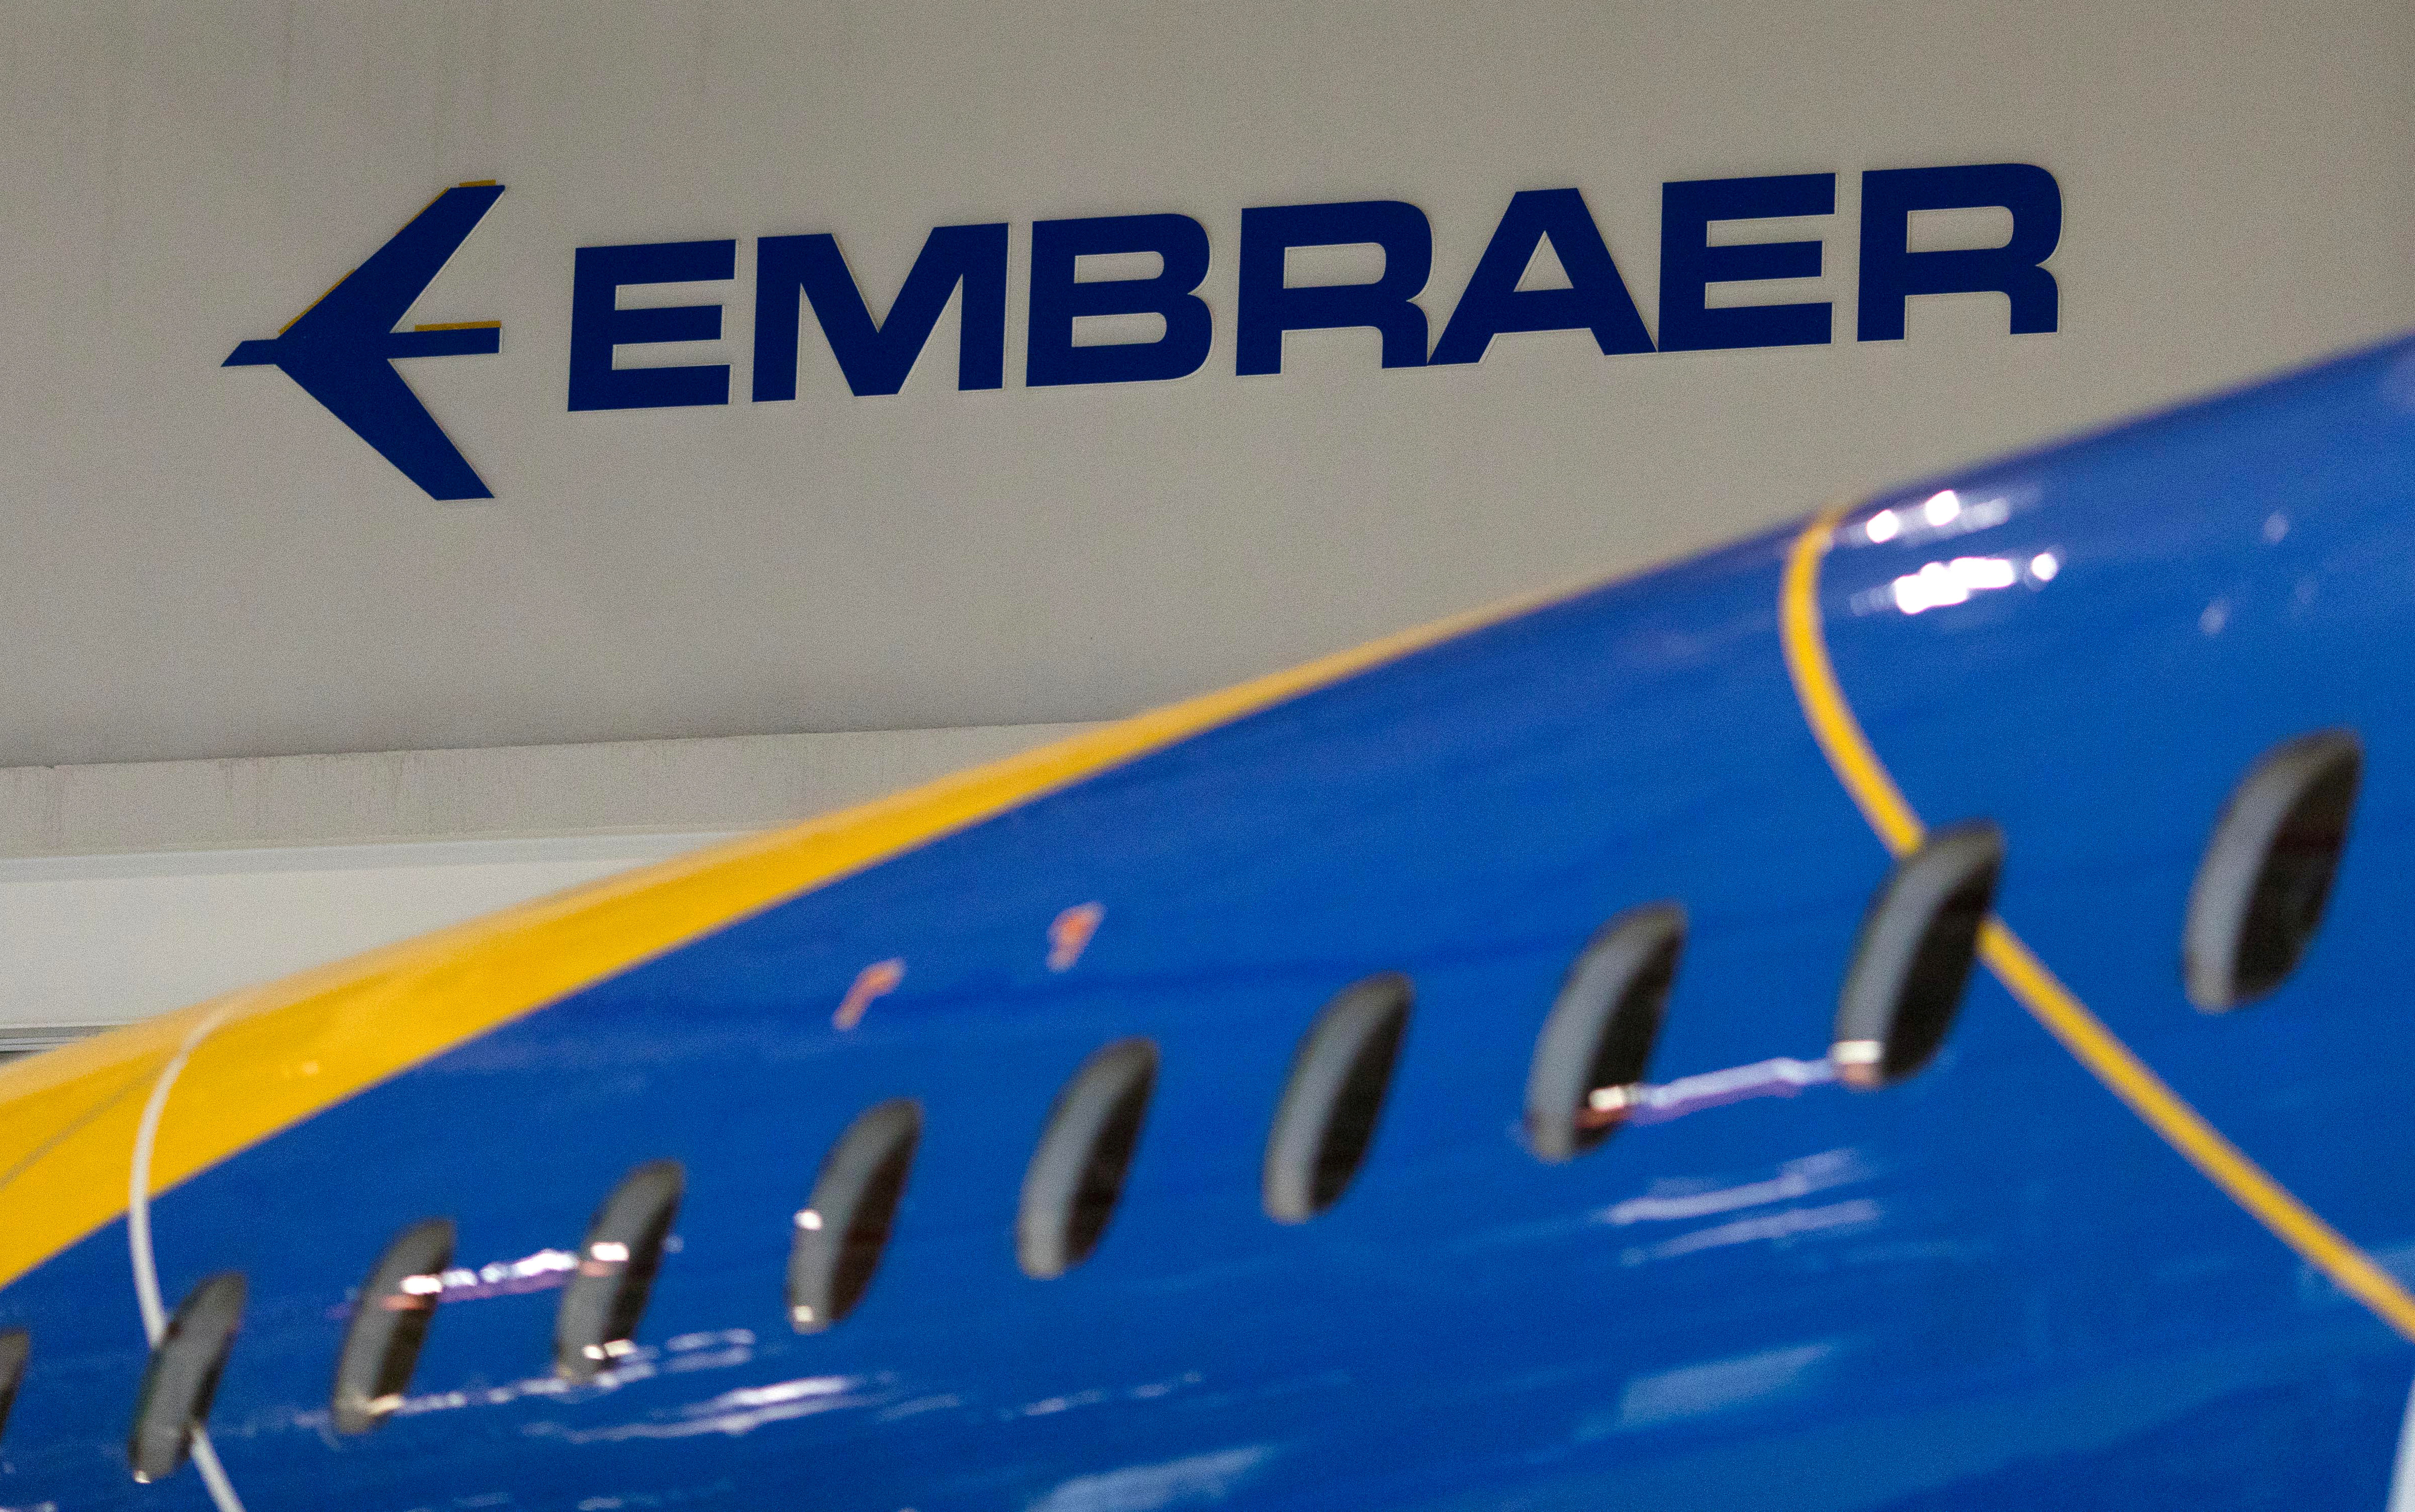 The logo of Brazilian planemaker Embraer SA is seen at the company's headquarters in Sao Jose dos Campos, Brazil February 28, 2018. REUTERS/Roosevelt Cassio/File Photo